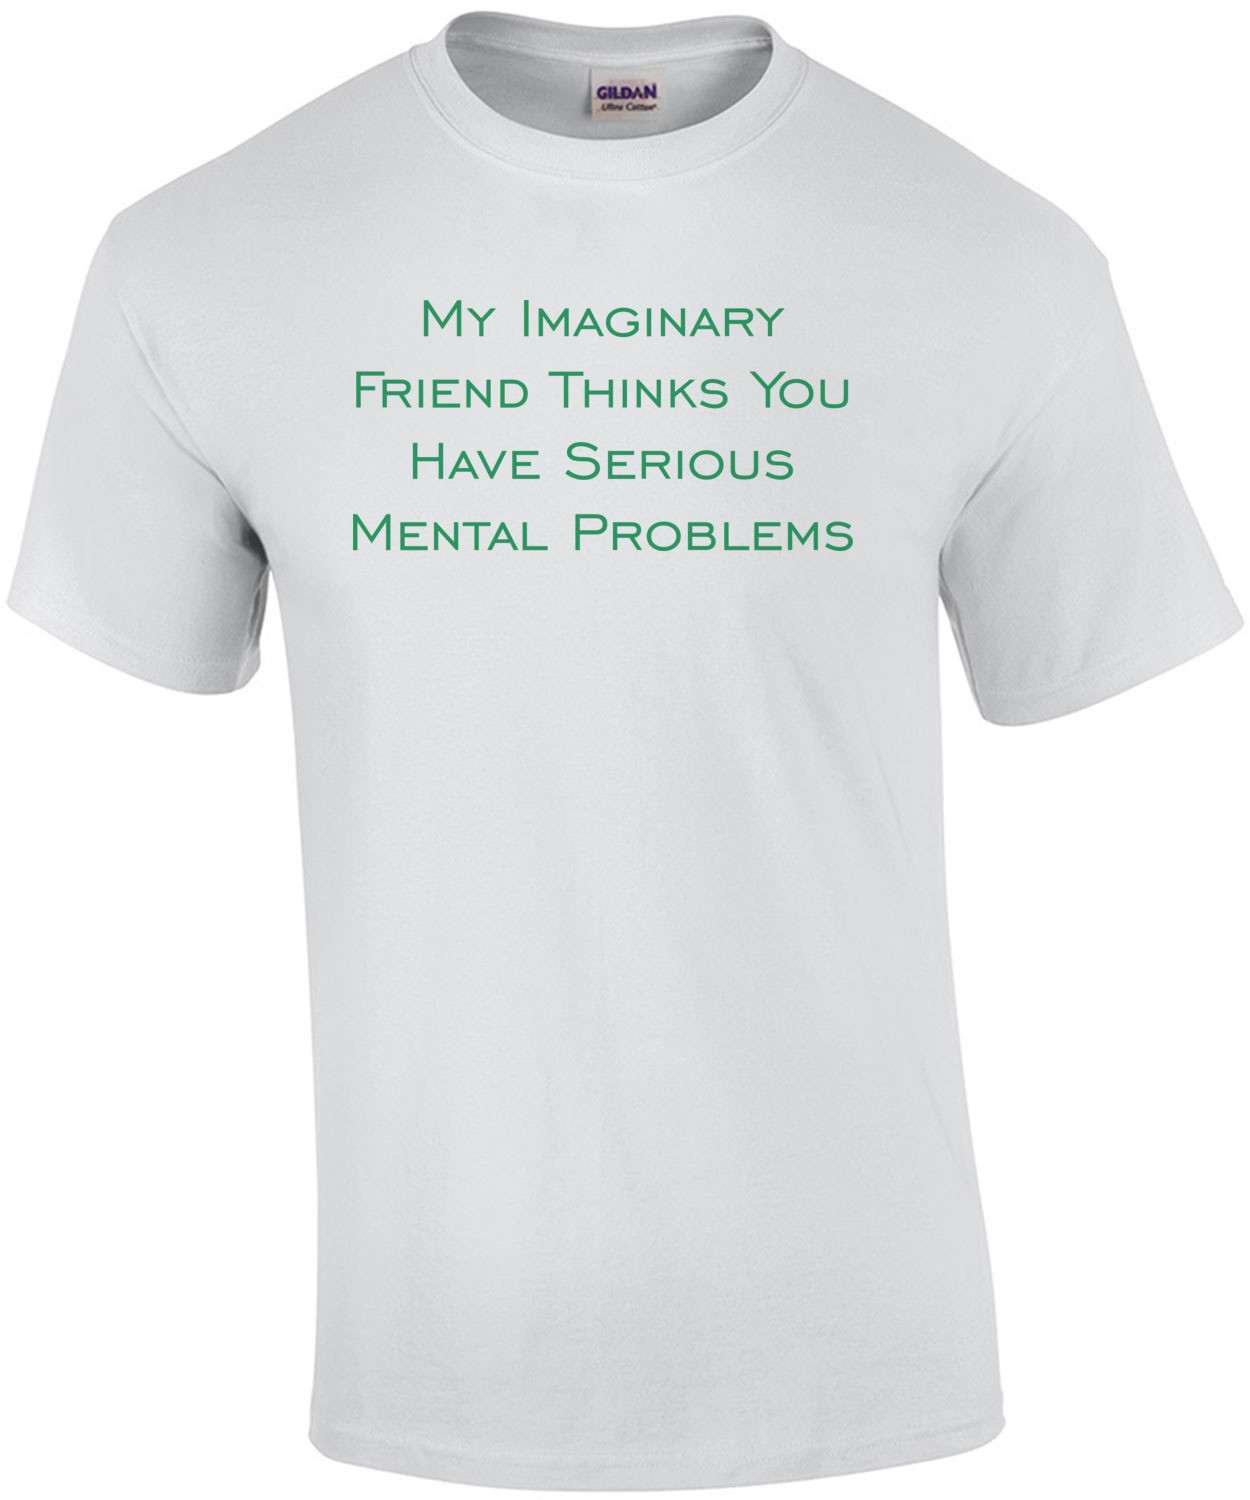 My Imaginary Friend Thinks You Have Serious Mental Problems T-Shirt